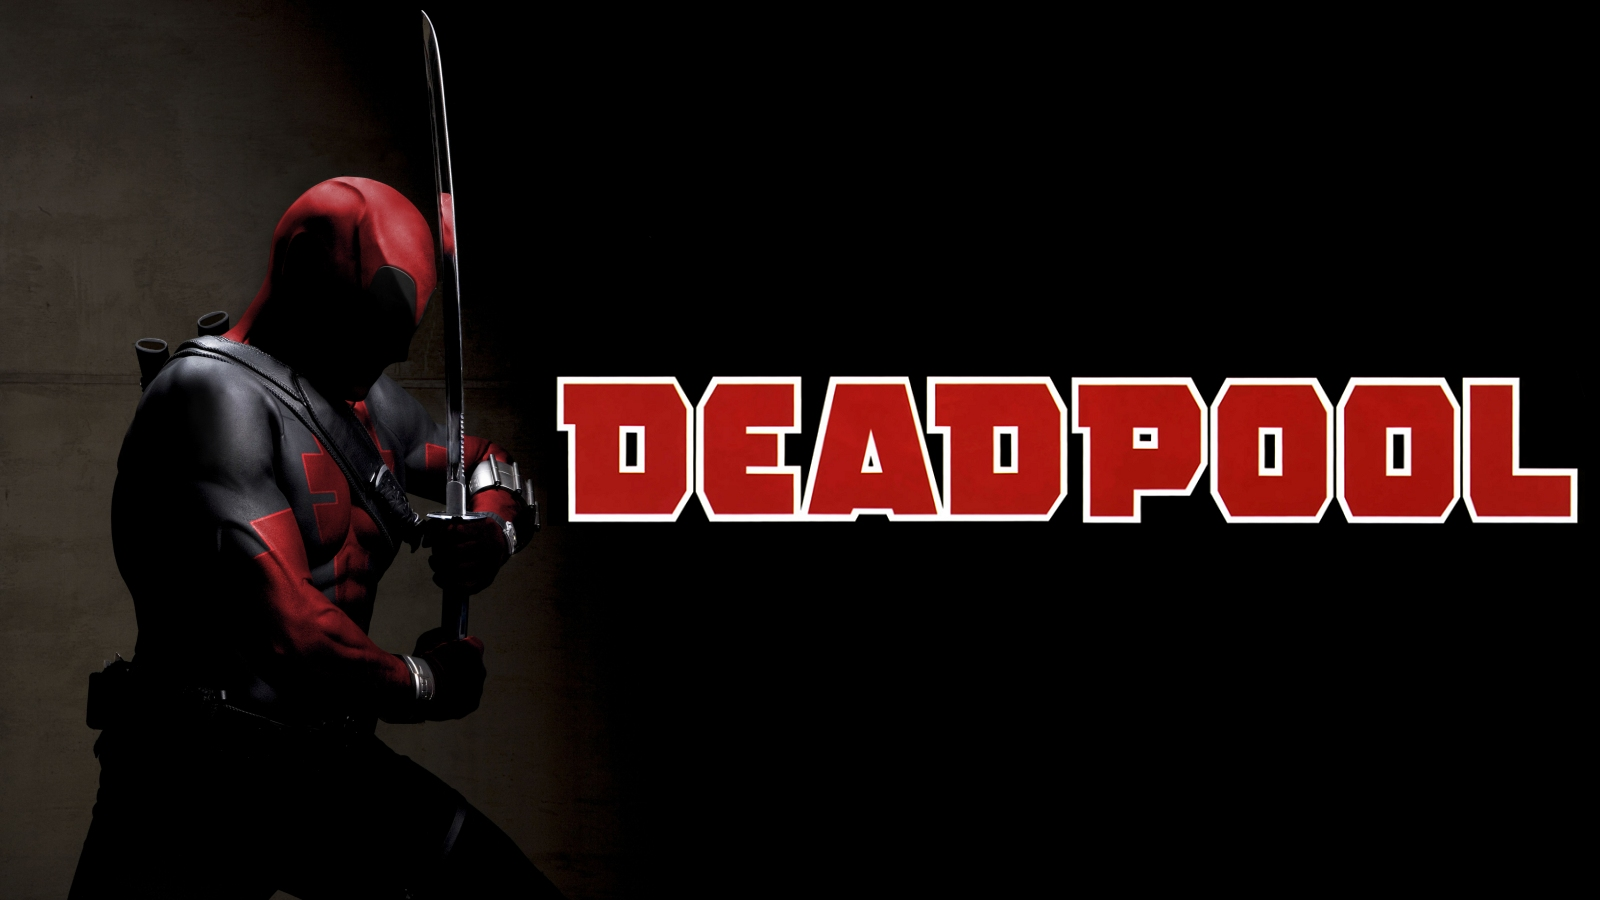 Comics - Deadpool  - Superman  - Bleach Fondo de Pantalla